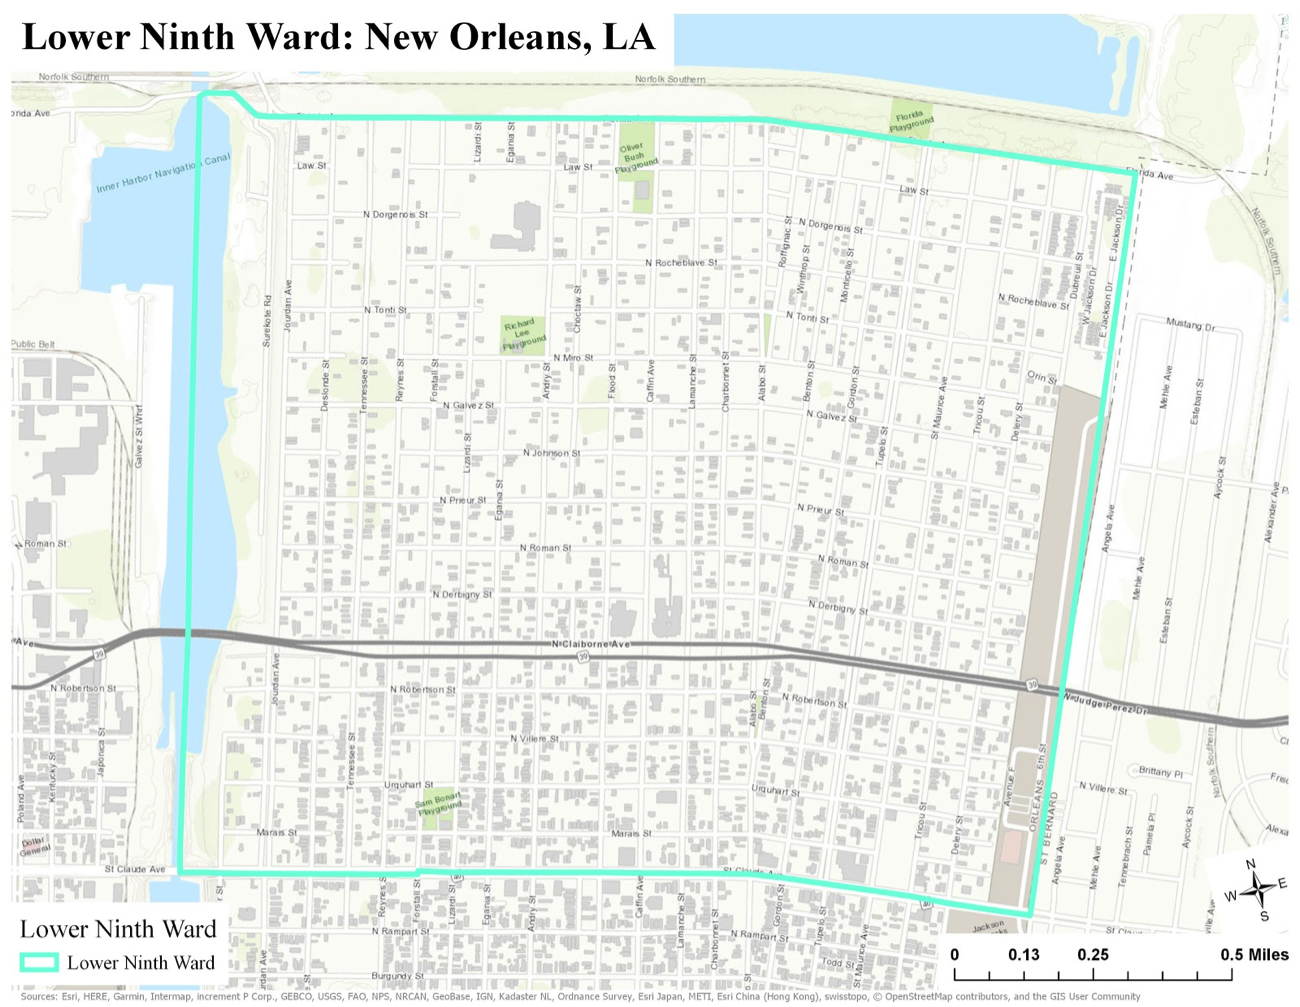 Esri ArcGIS Pro, City of New Orleans, FEMA, USGS, Scale: 1:15,000